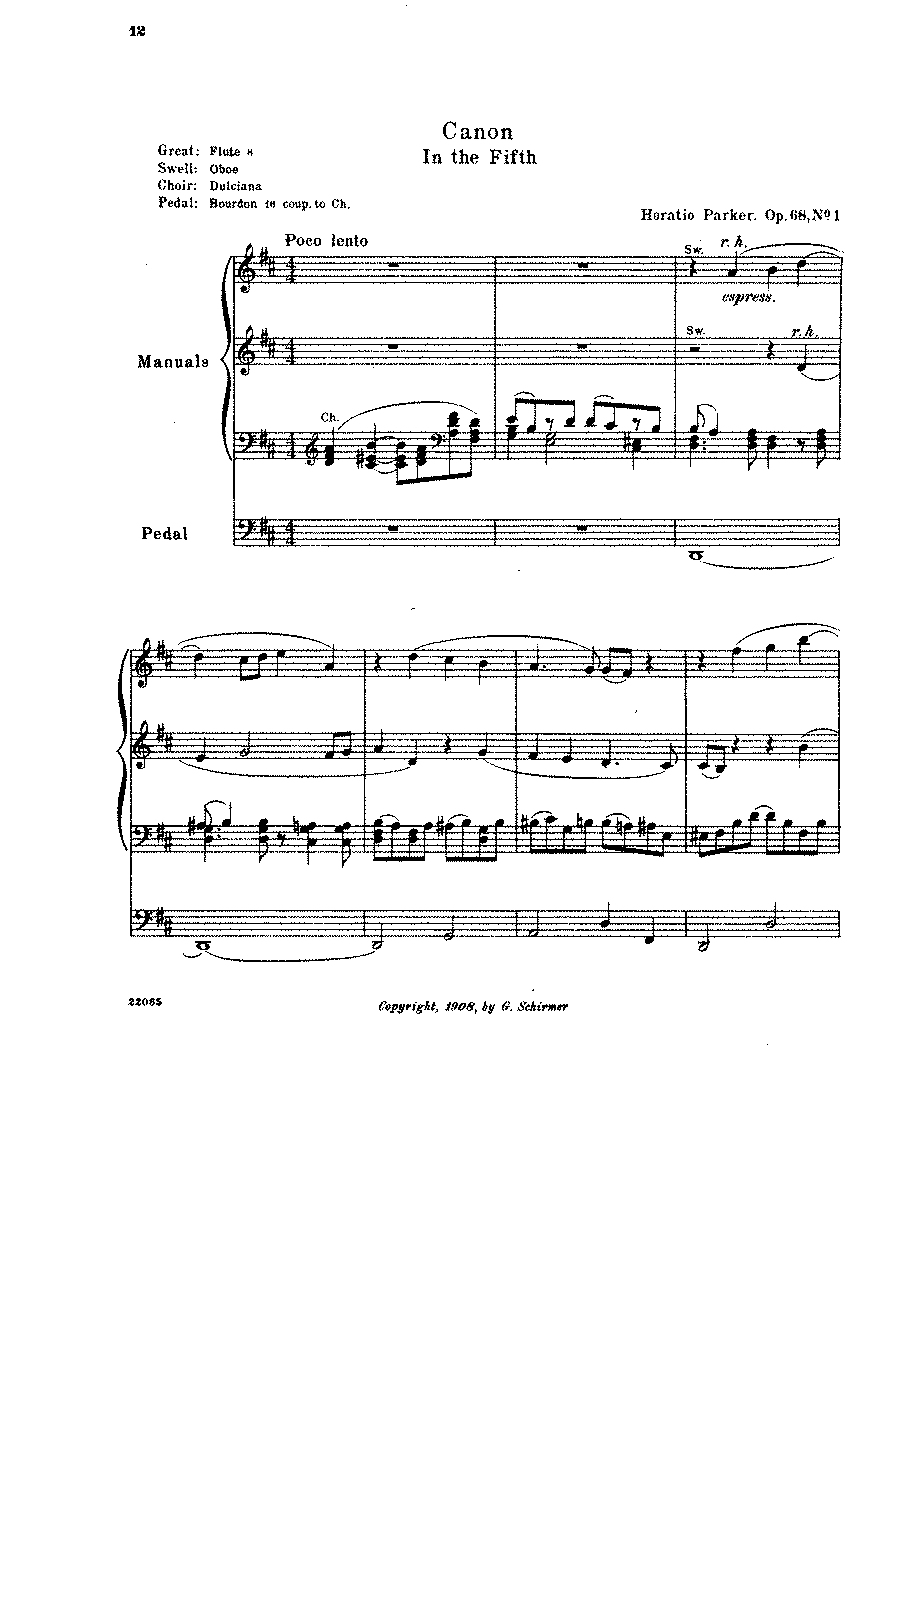 PMLP213317-HParker Canon in the Fifth, Op.68 No.1.pdf